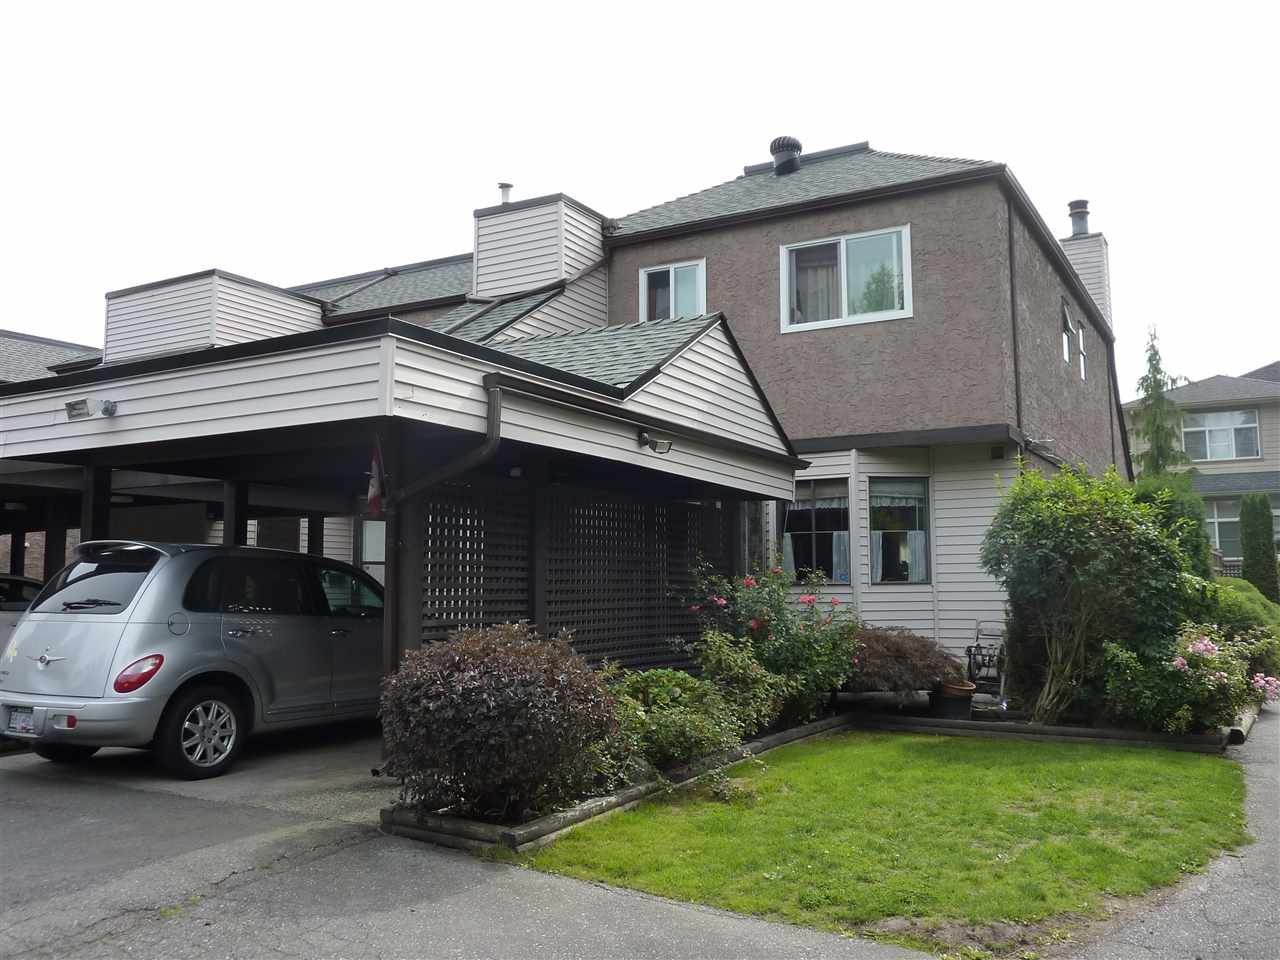 Main Photo: 36 7533 140 STREET in Surrey: East Newton Townhouse for sale : MLS®# R2001365